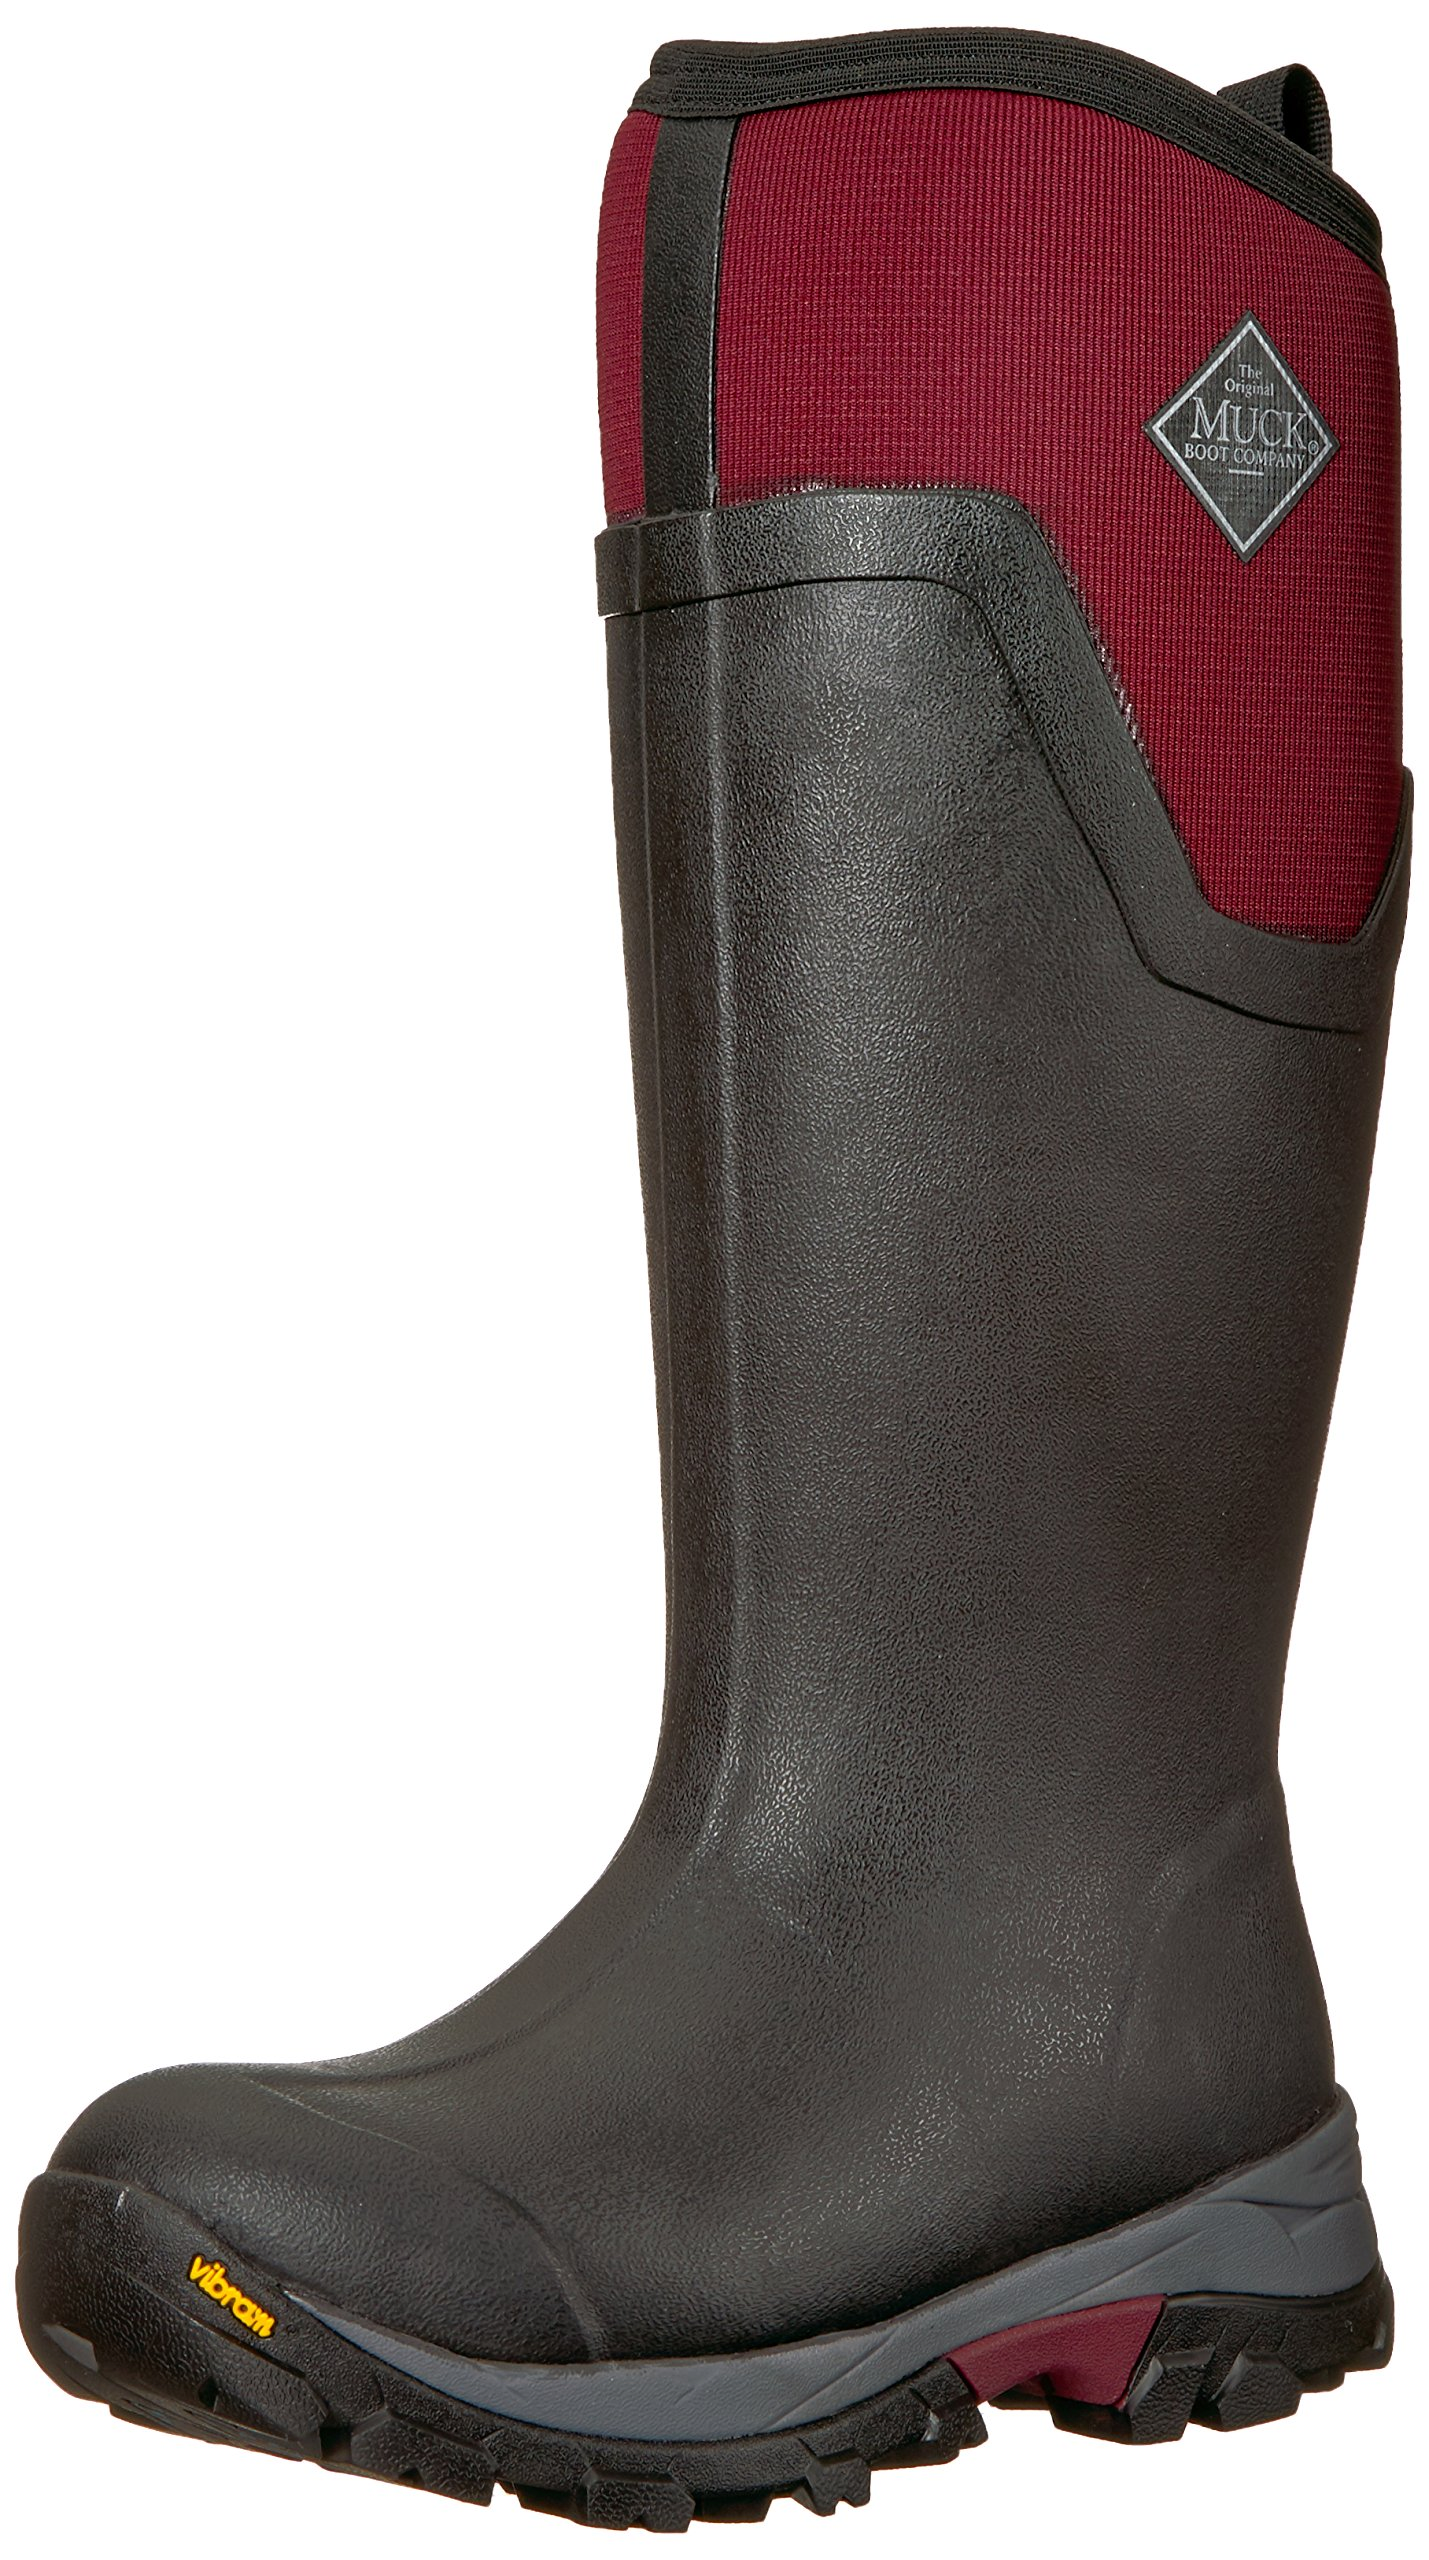 Muck Boots Arctic Ice Extreme Conditions Tall Rubber Women